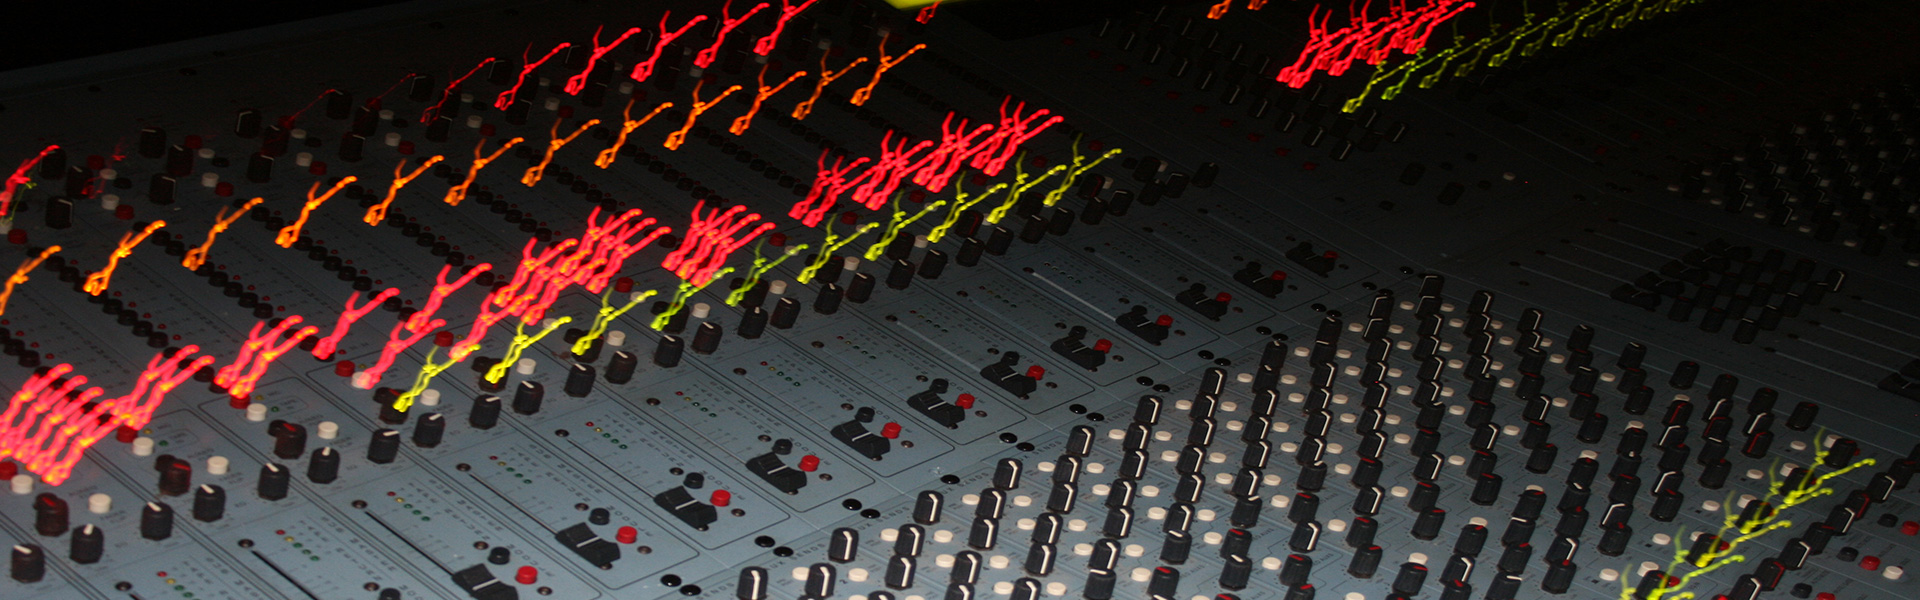 https://mastering.studio11chicago.com/wp-content/uploads/2014/02/STUDIO-11-CONSOLE-7.jpg